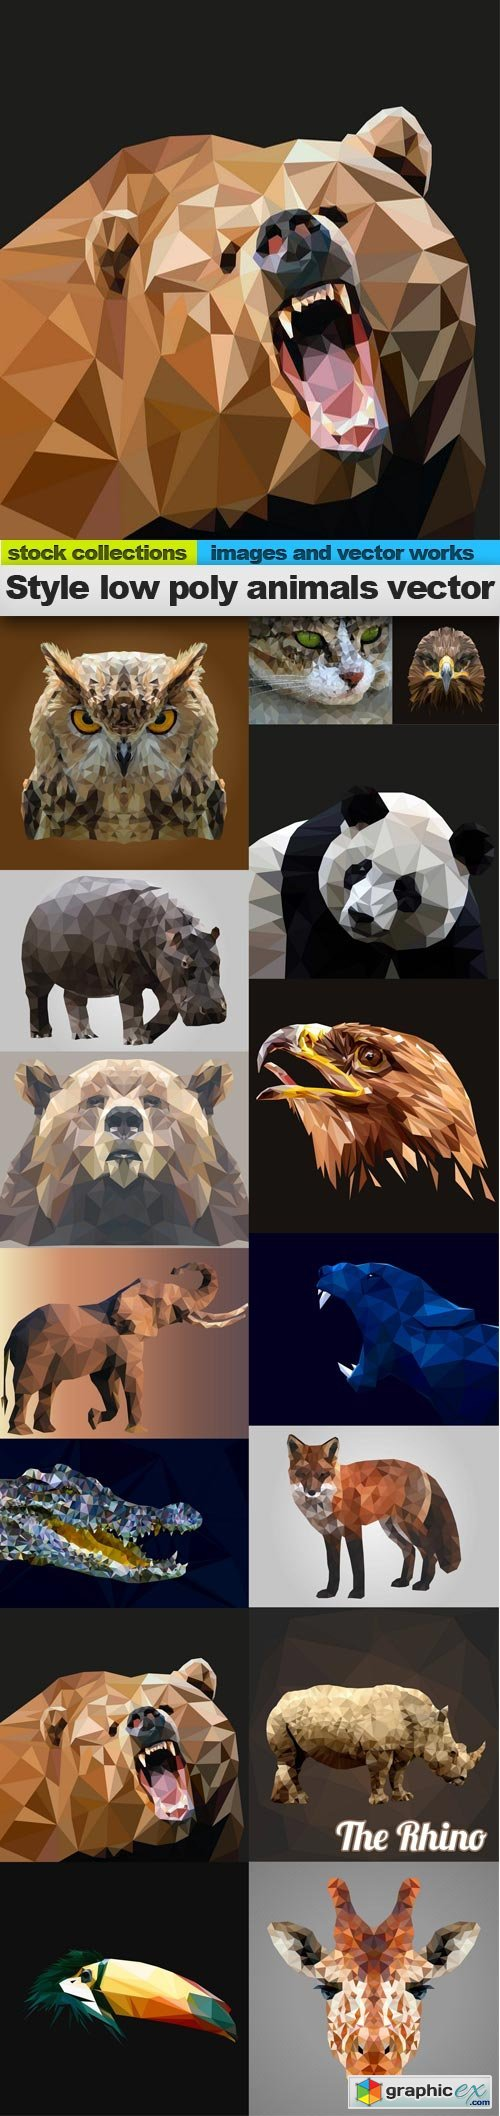 Style low poly animals vector, 15 x EPS